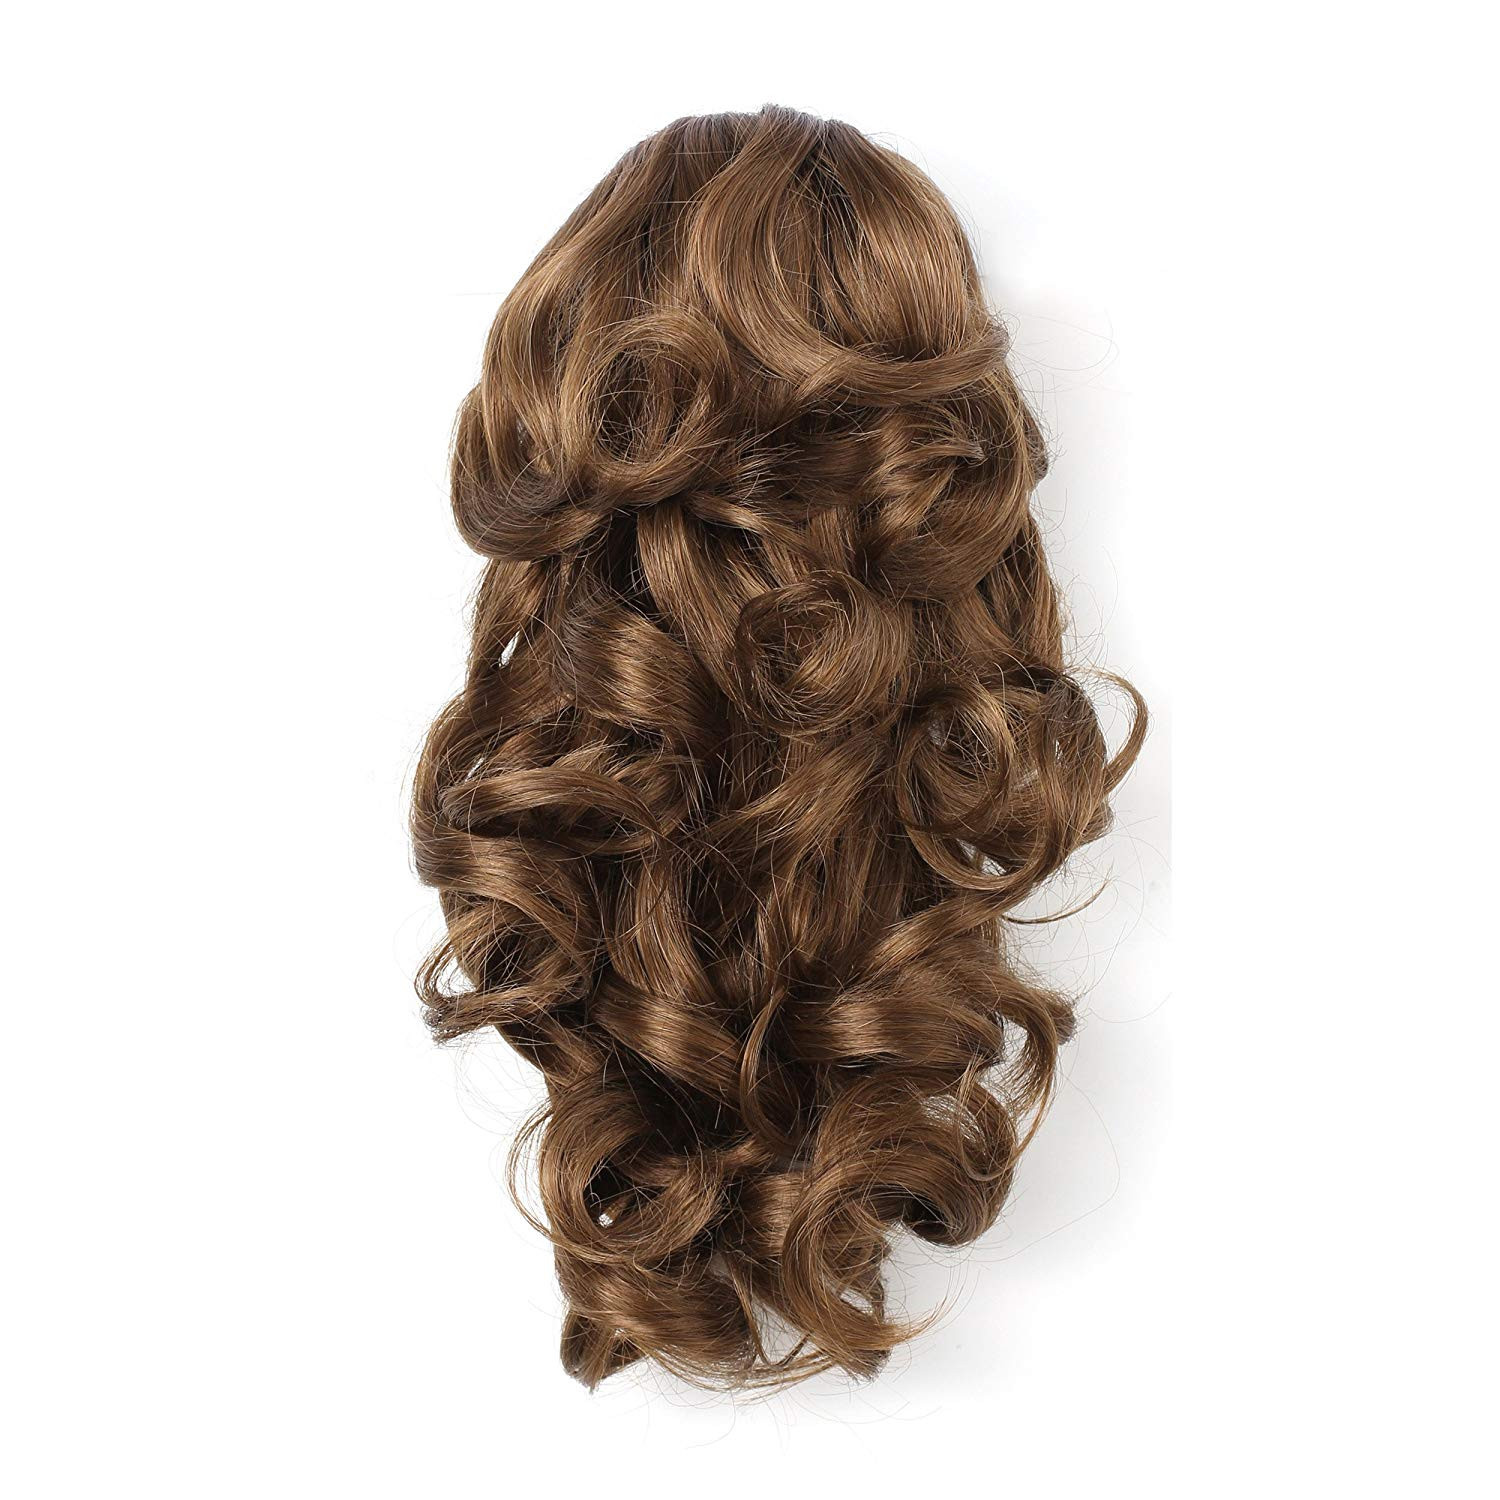 """OneDor 12"""" Curly Synthetic Clip In Claw Ponytail Hair Extension Synthetic Hairpiece 115g with a jaw/claw clip (12#-Light Brown)"""